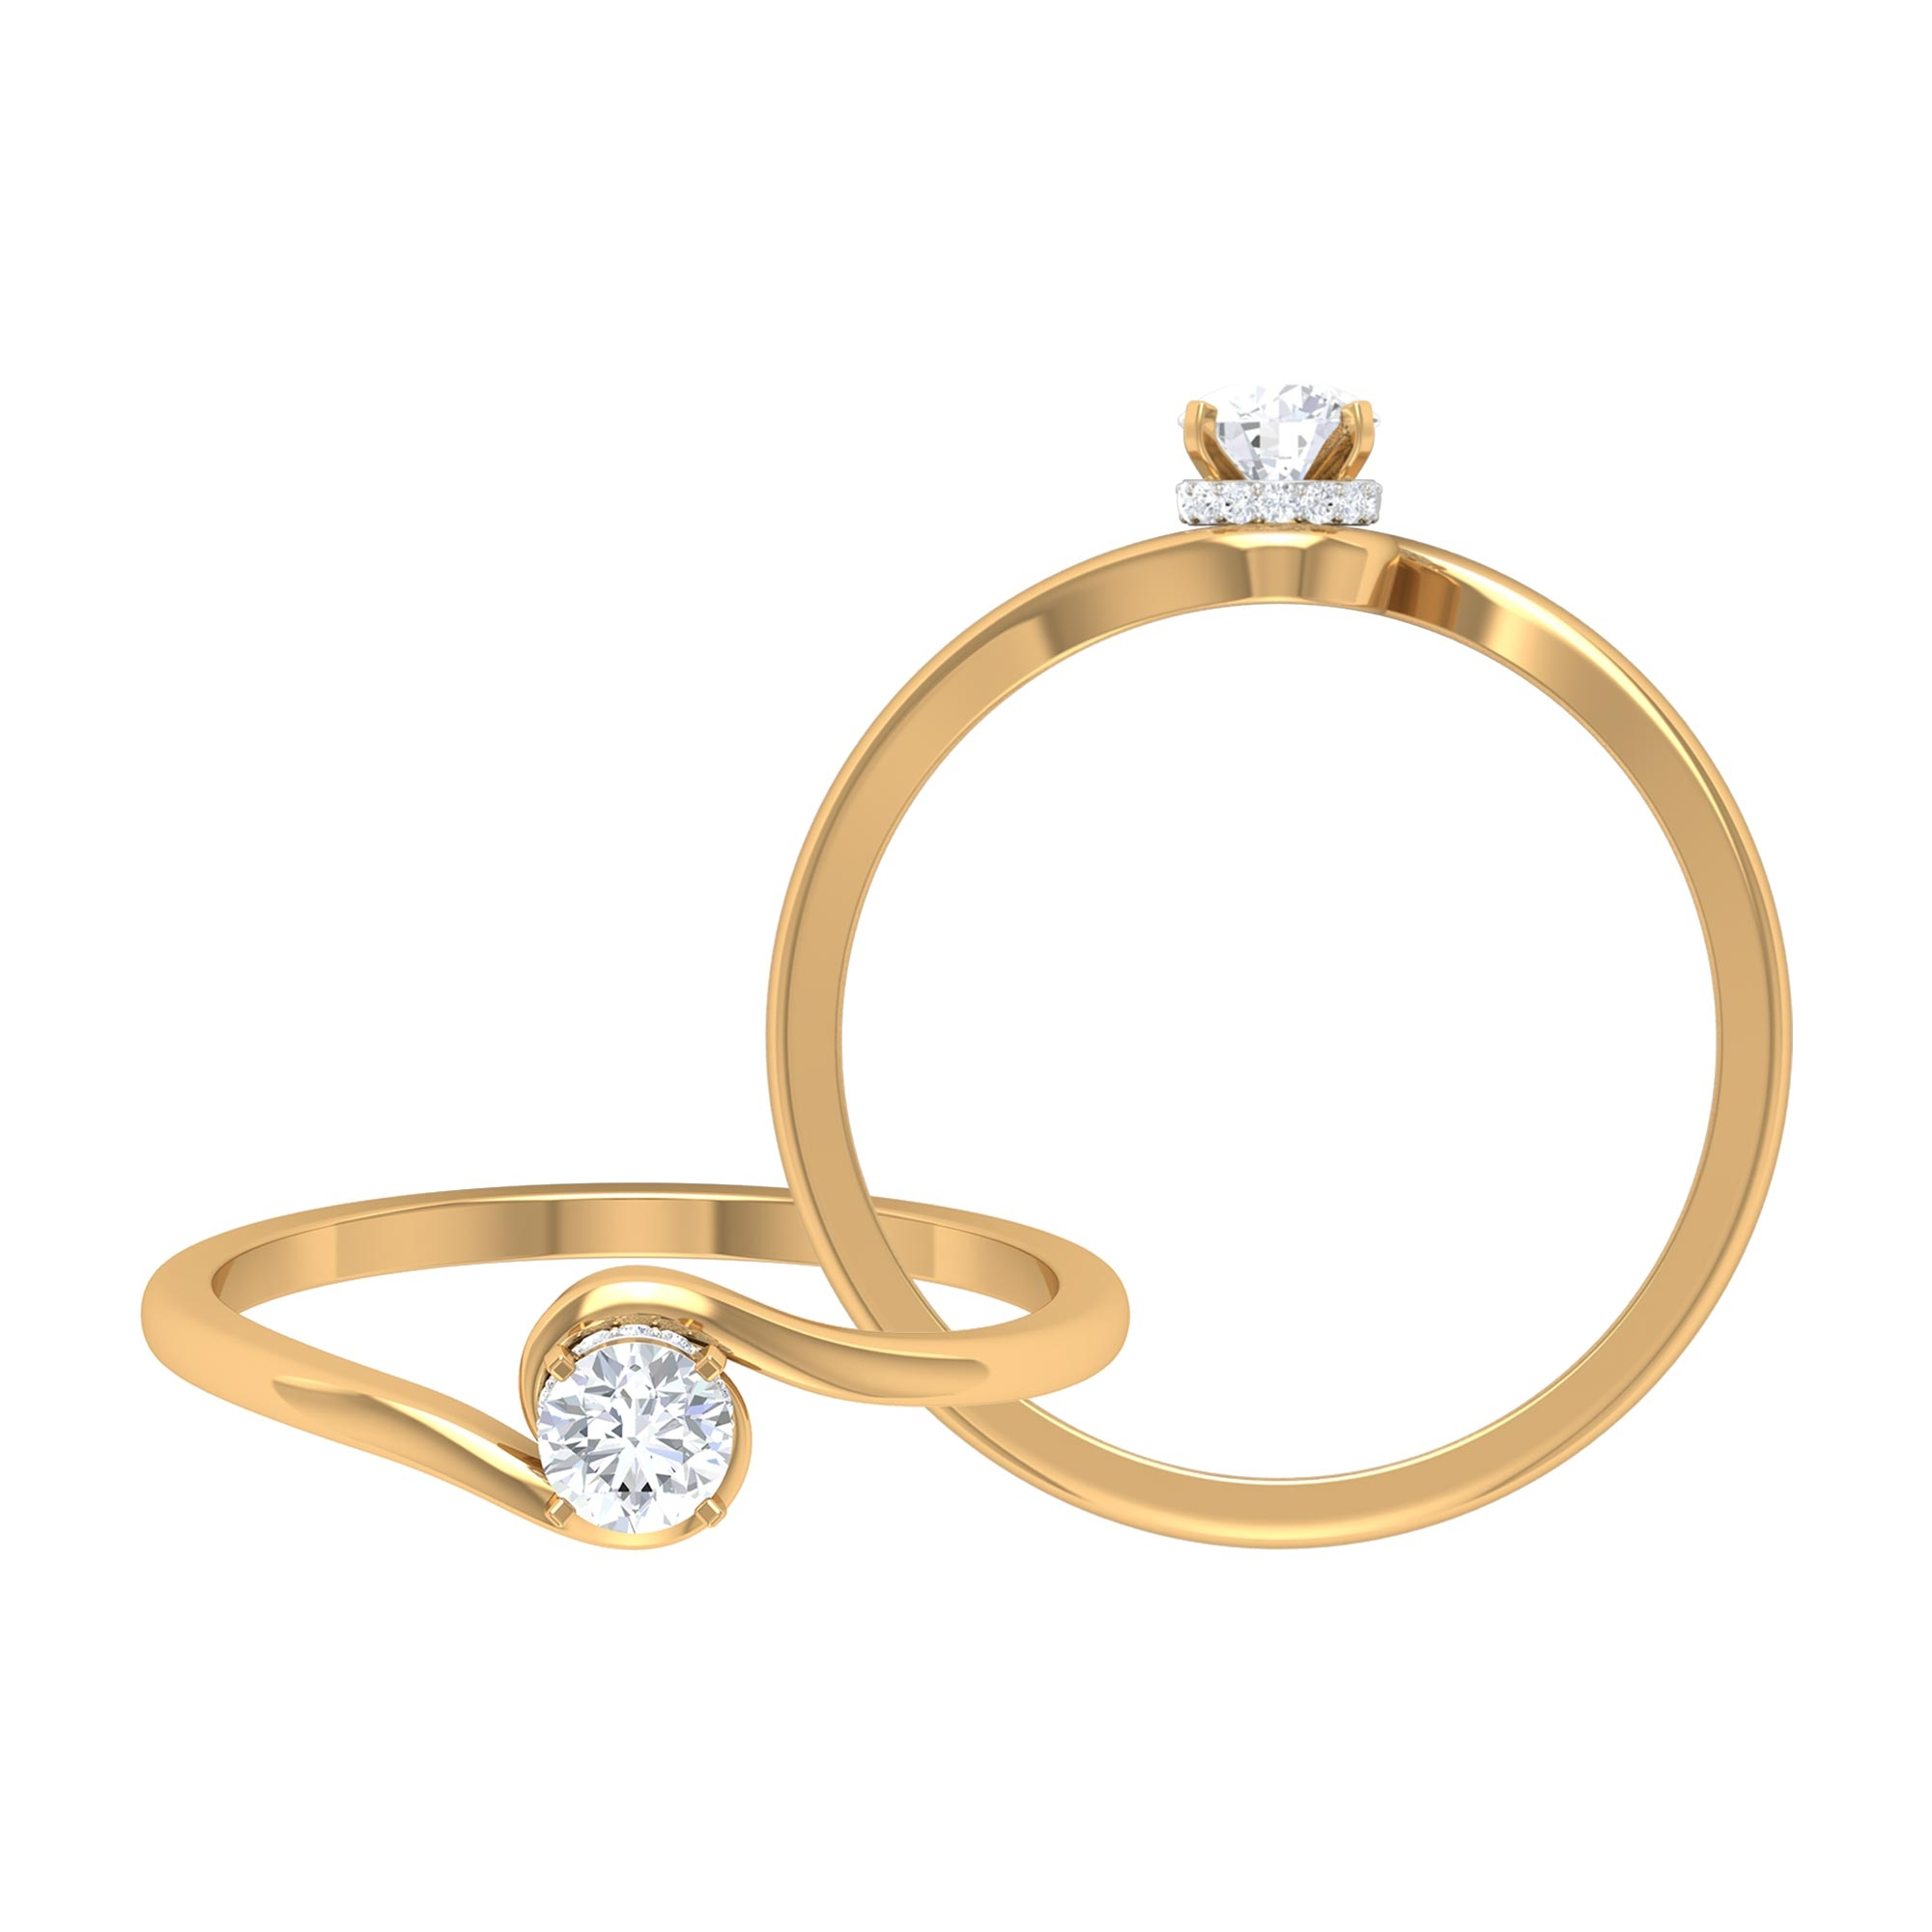 4 MM Round Cut Diamond Solitaire Ring with Hidden Halo and Bypass Shank